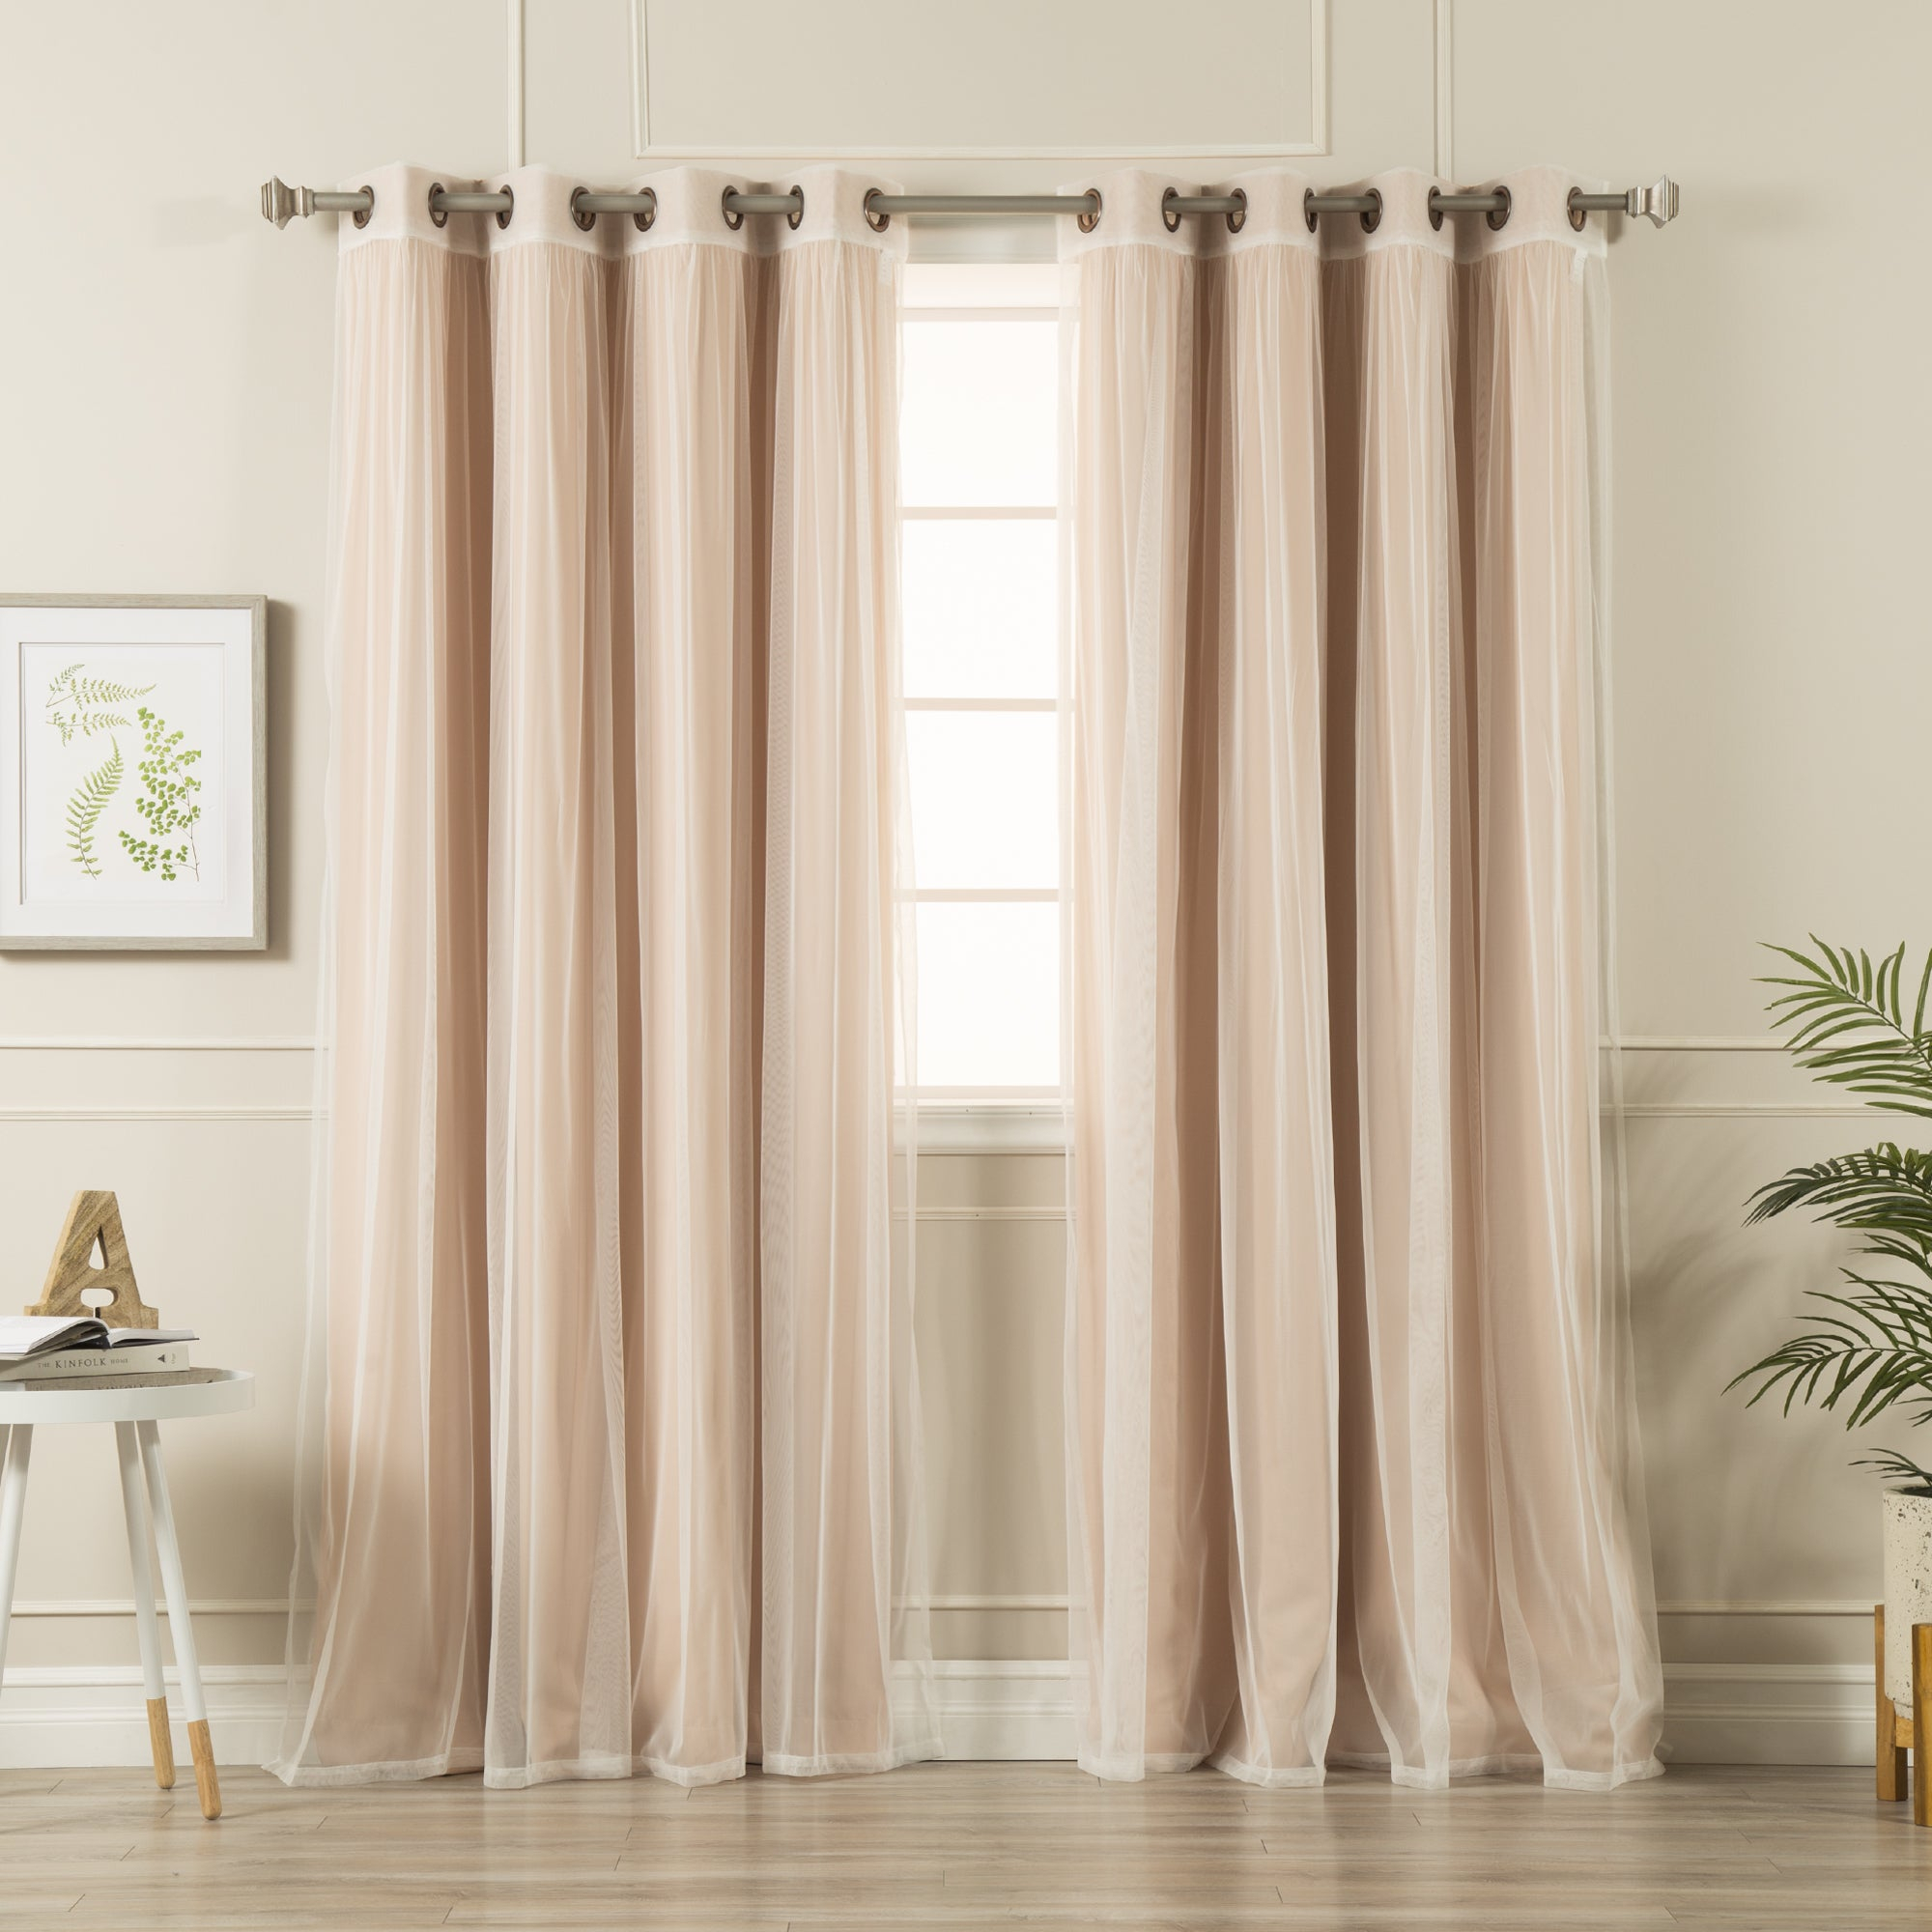 Aurora Home Mix And Match Blackout Tulle Lace Sheer 4 Piece Curtain Panel Set With Mix And Match Blackout Tulle Lace Sheer Curtain Panel Sets (View 10 of 20)